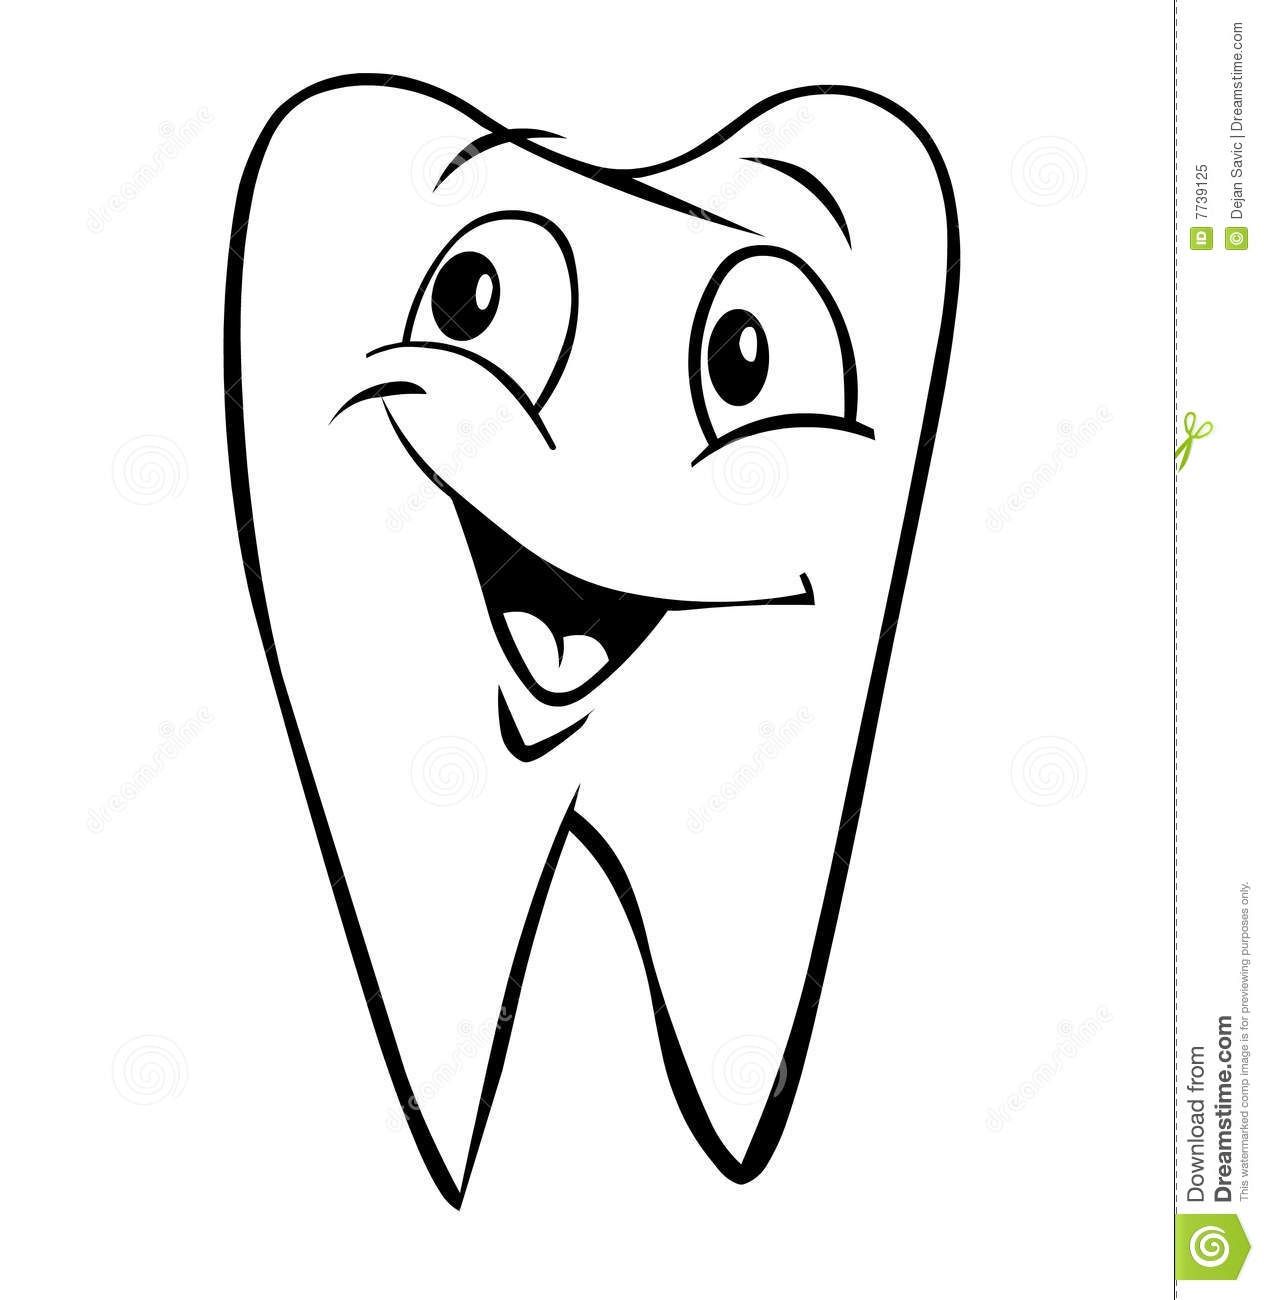 teeth clip art black and white | clipart panda - free clipart images